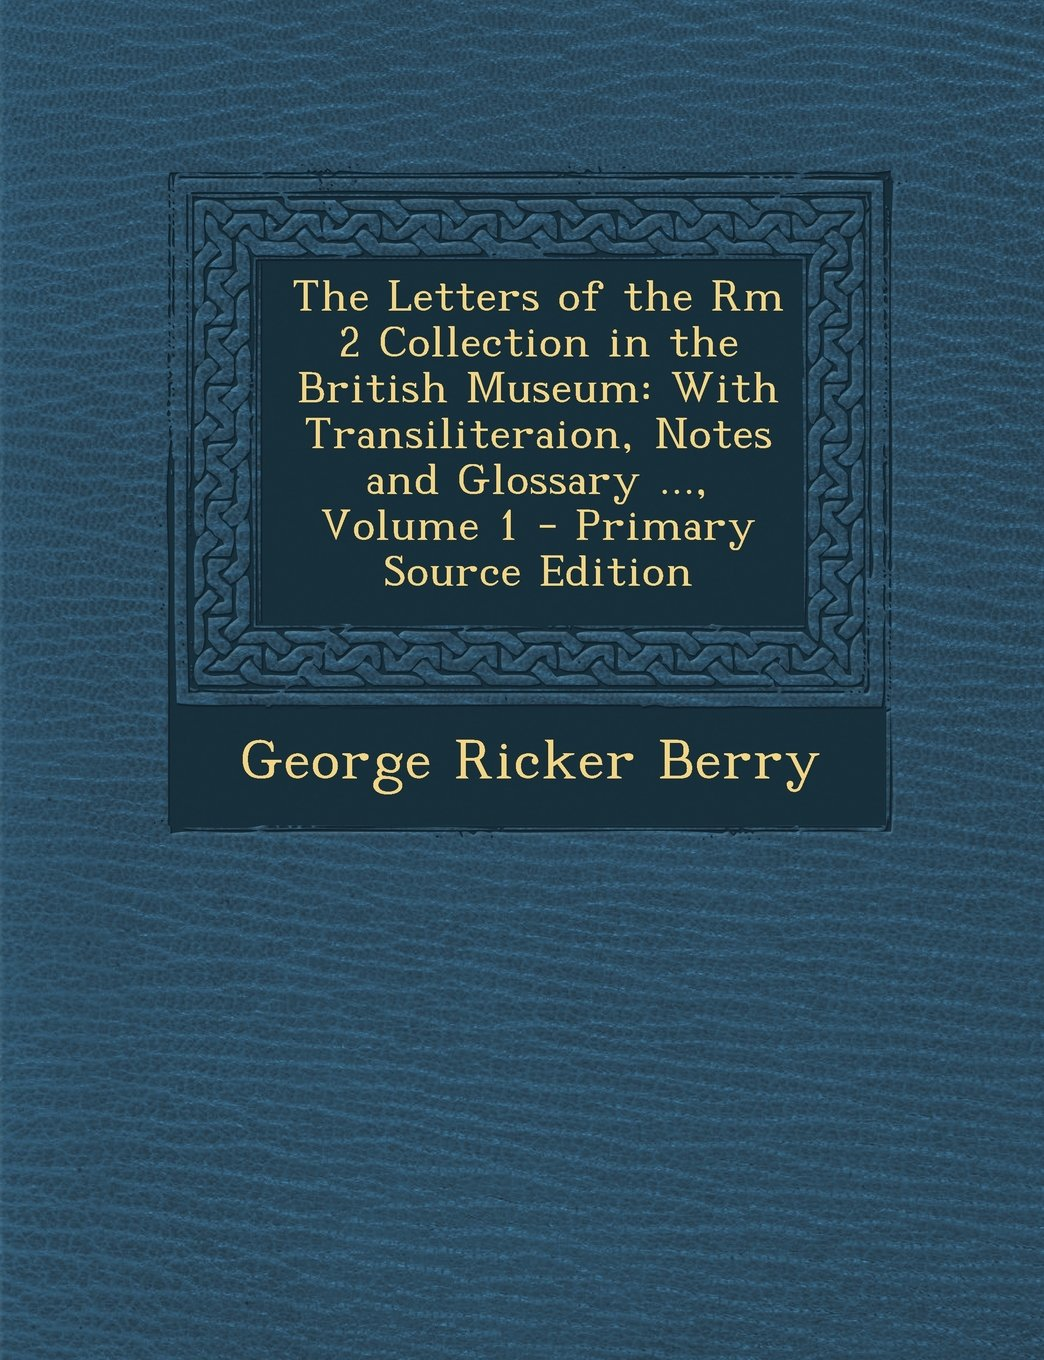 The Letters of the Rm 2 Collection in the British Museum: With Transiliteraion, Notes and Glossary ..., Volume 1 - Primary Source Edition ebook